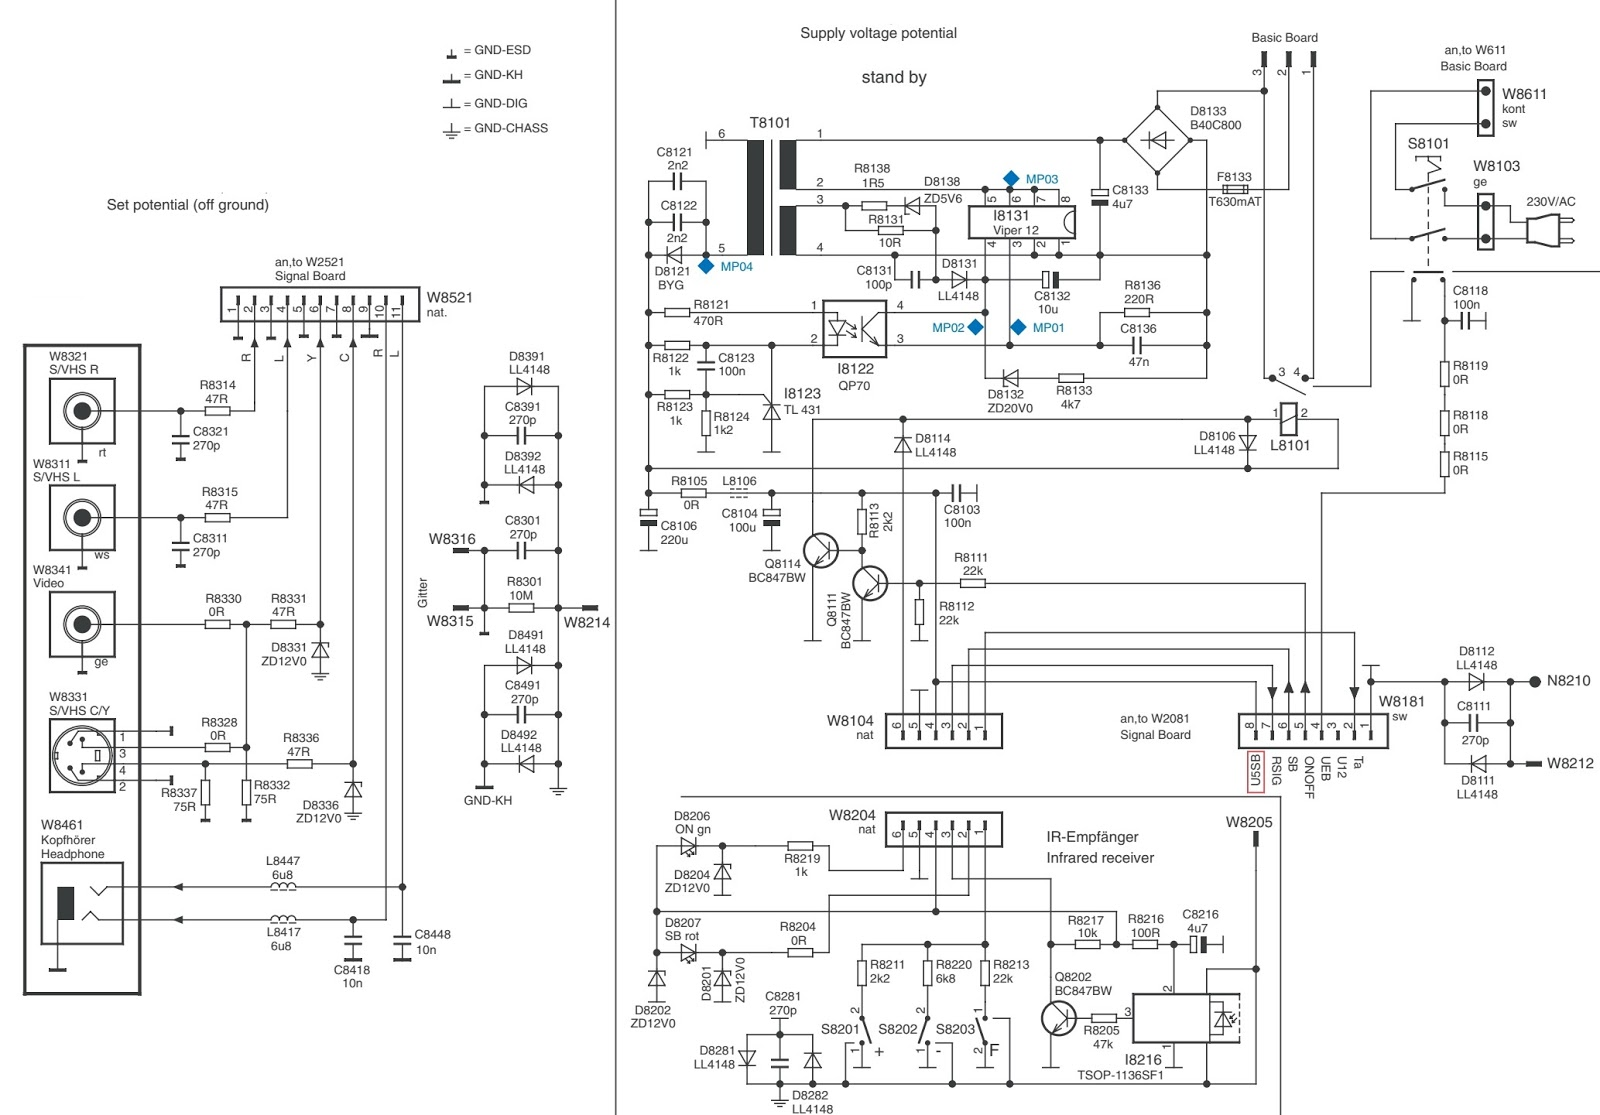 sony playstation3 schematic diagram click on schematic to zoom in click on schematic to zoom in wiring diagram host sony playstation3 schematic diagram click on schematic to zoom in